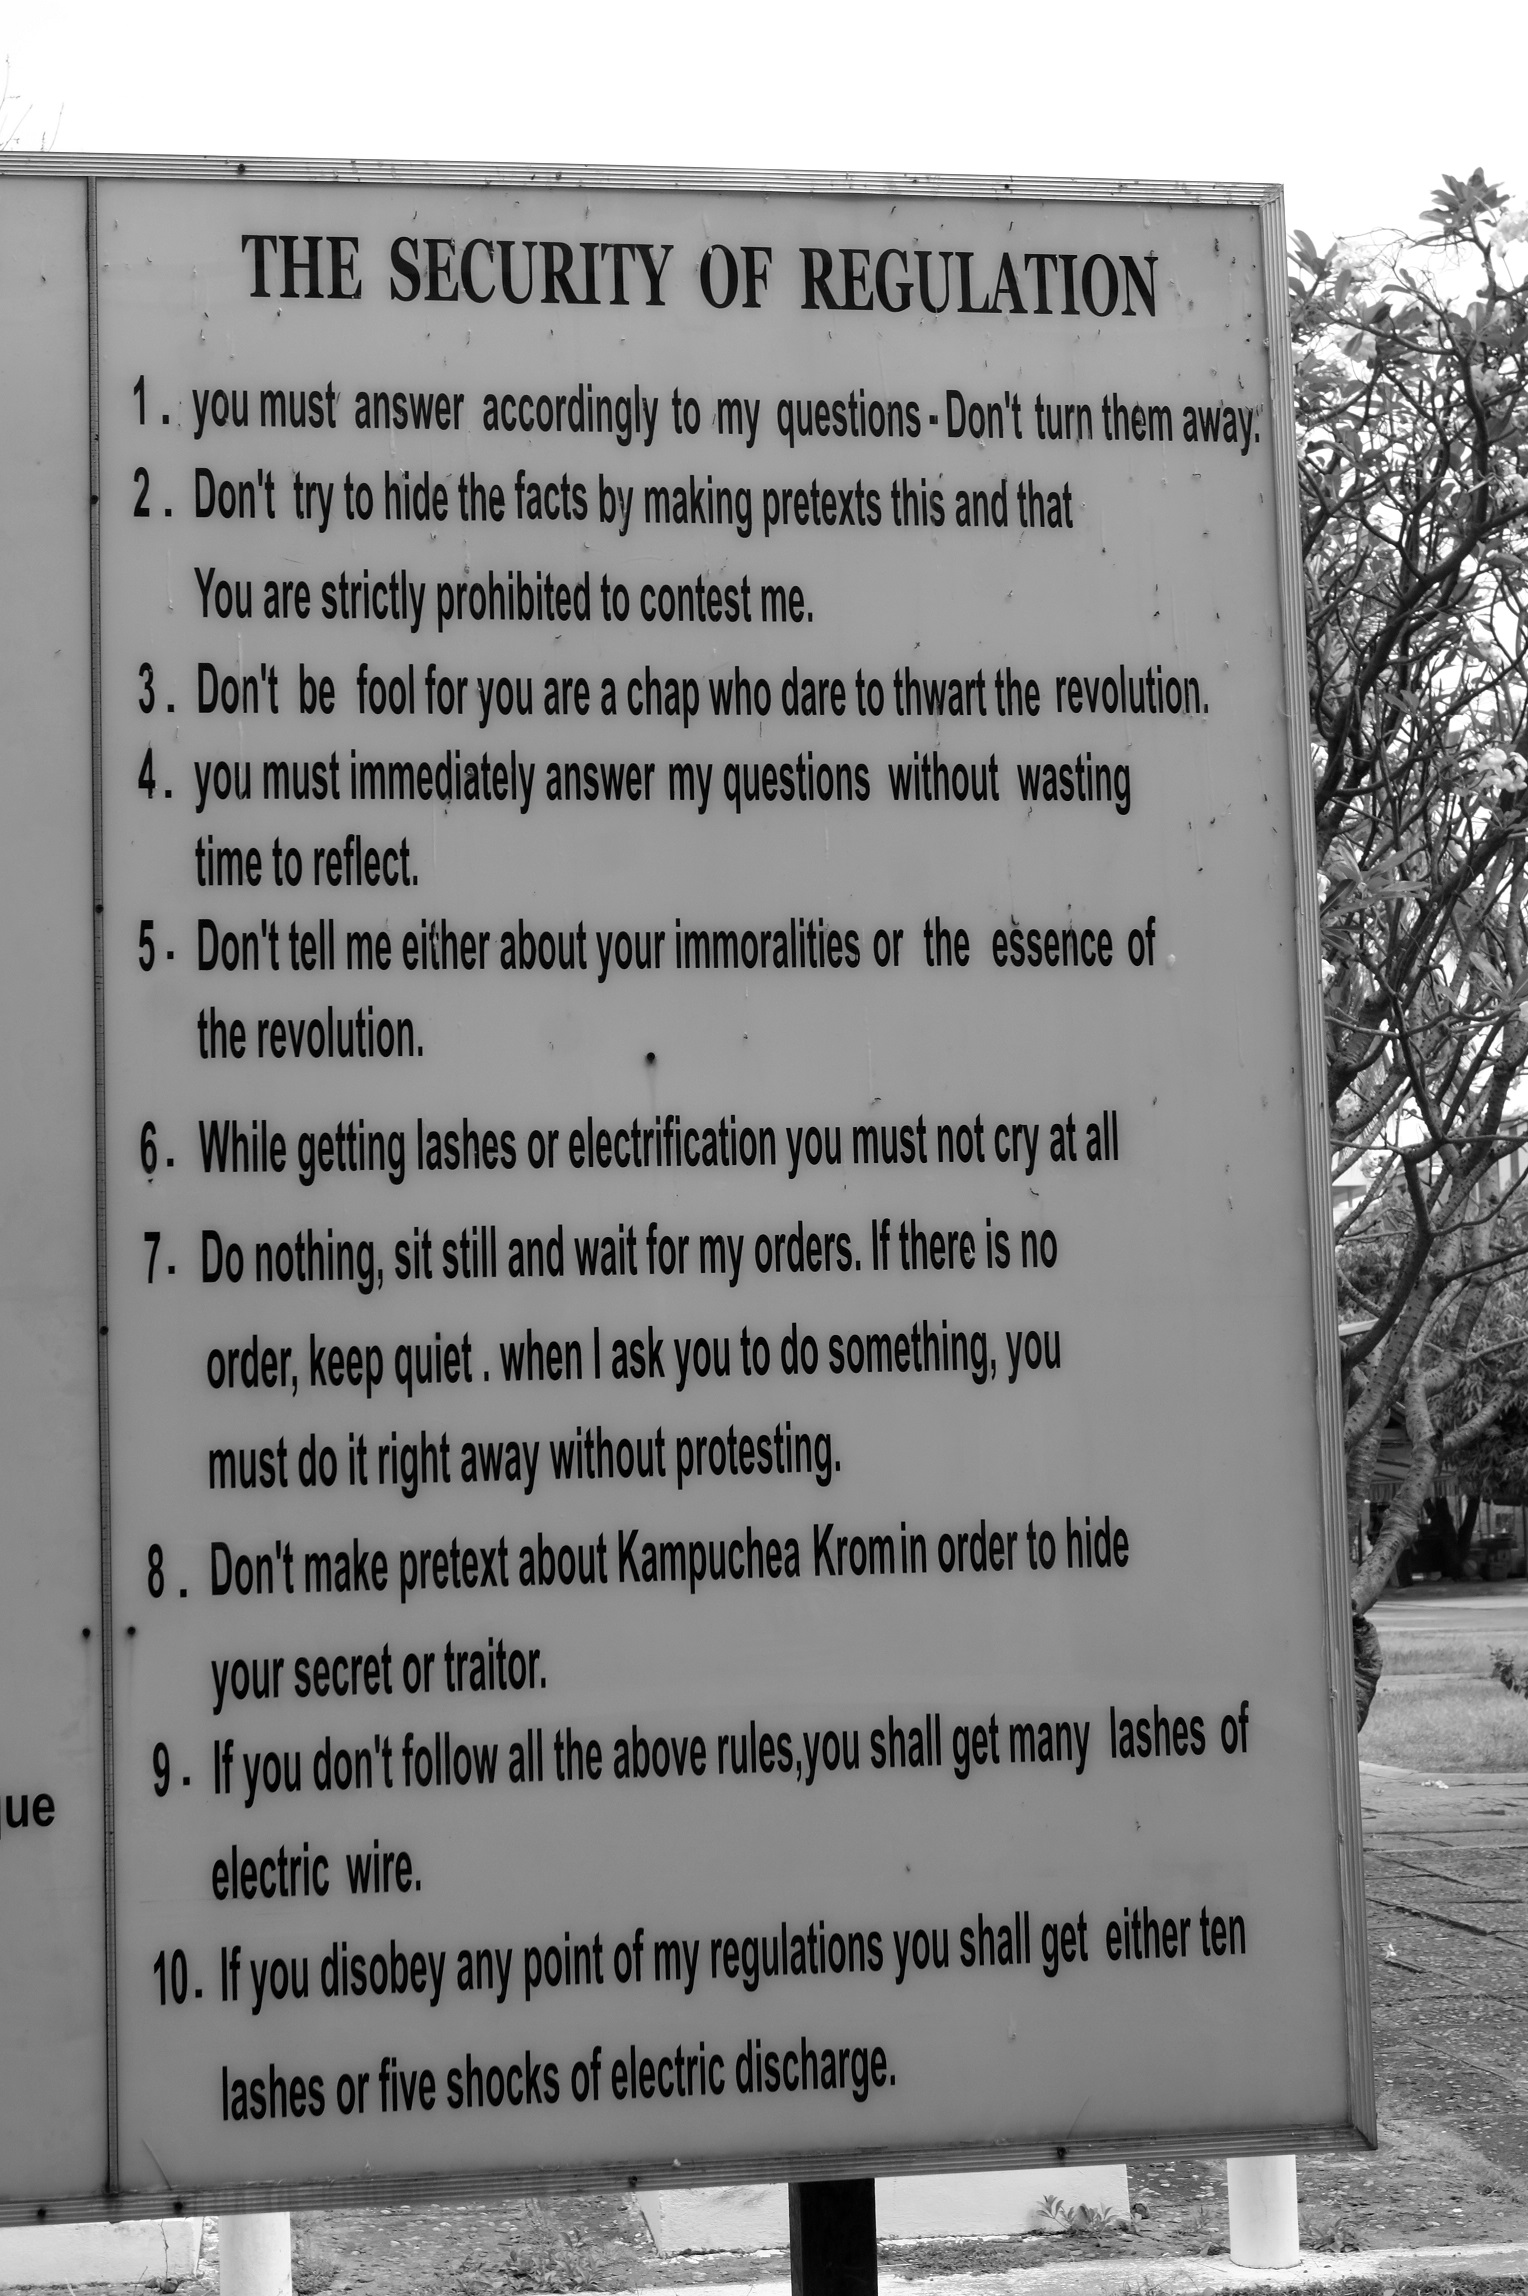 Rules at Tuol Sleng (S-21)